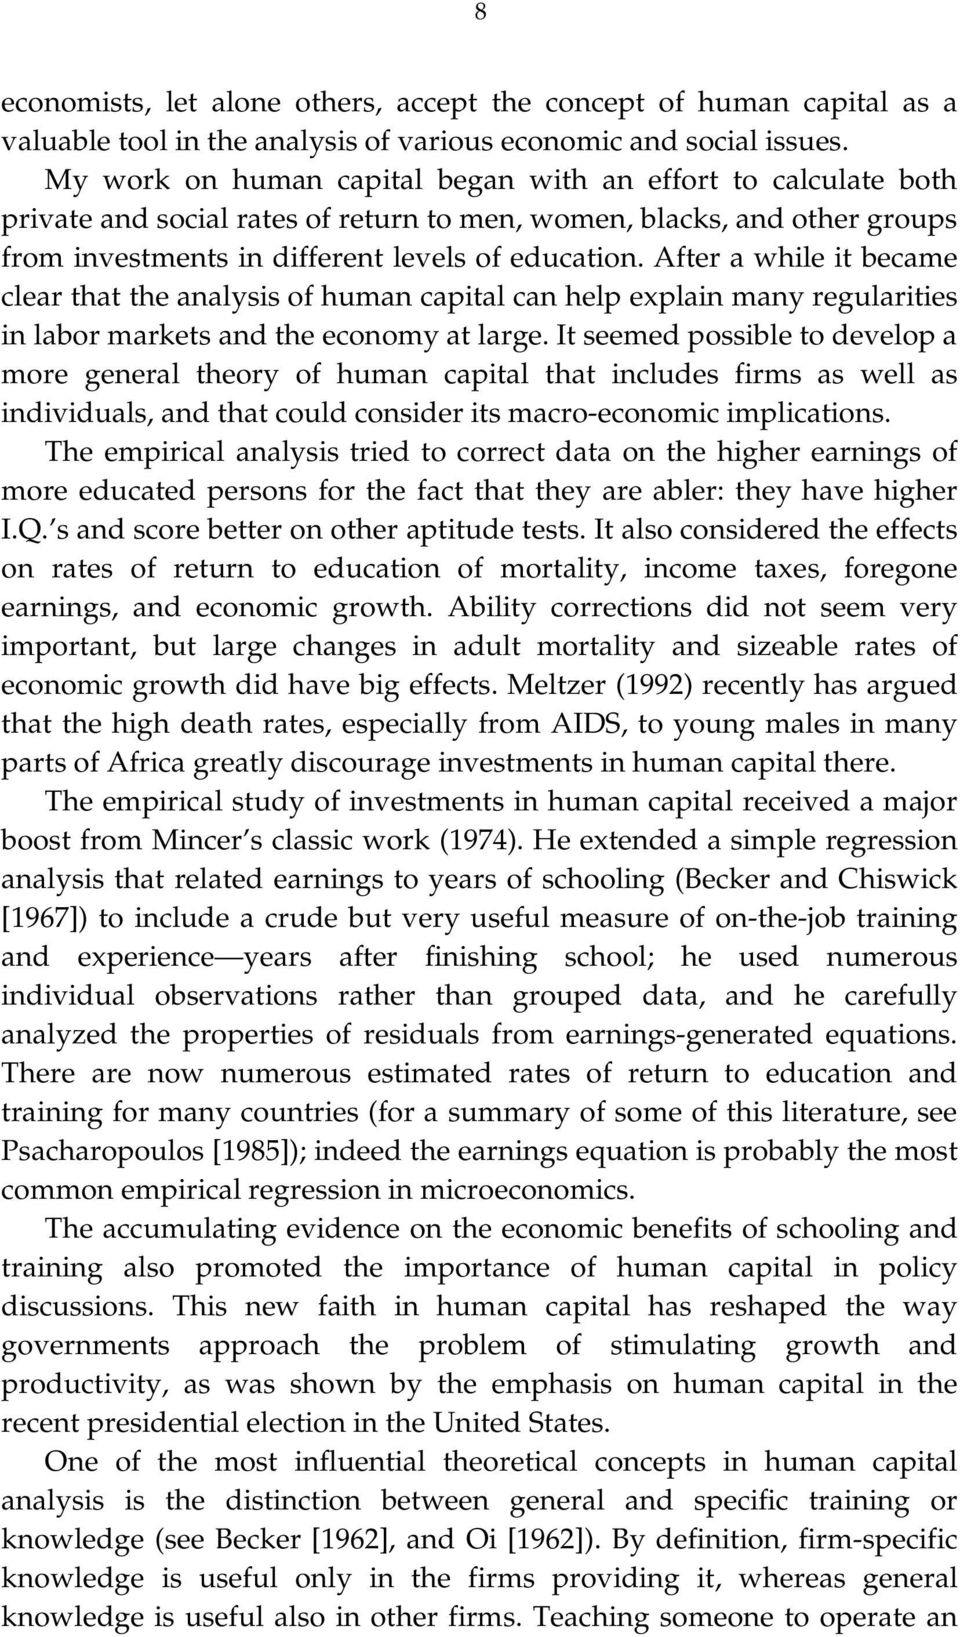 After a while it became clear that the analysis of human capital can help explain many regularities in labor markets and the economy at large.